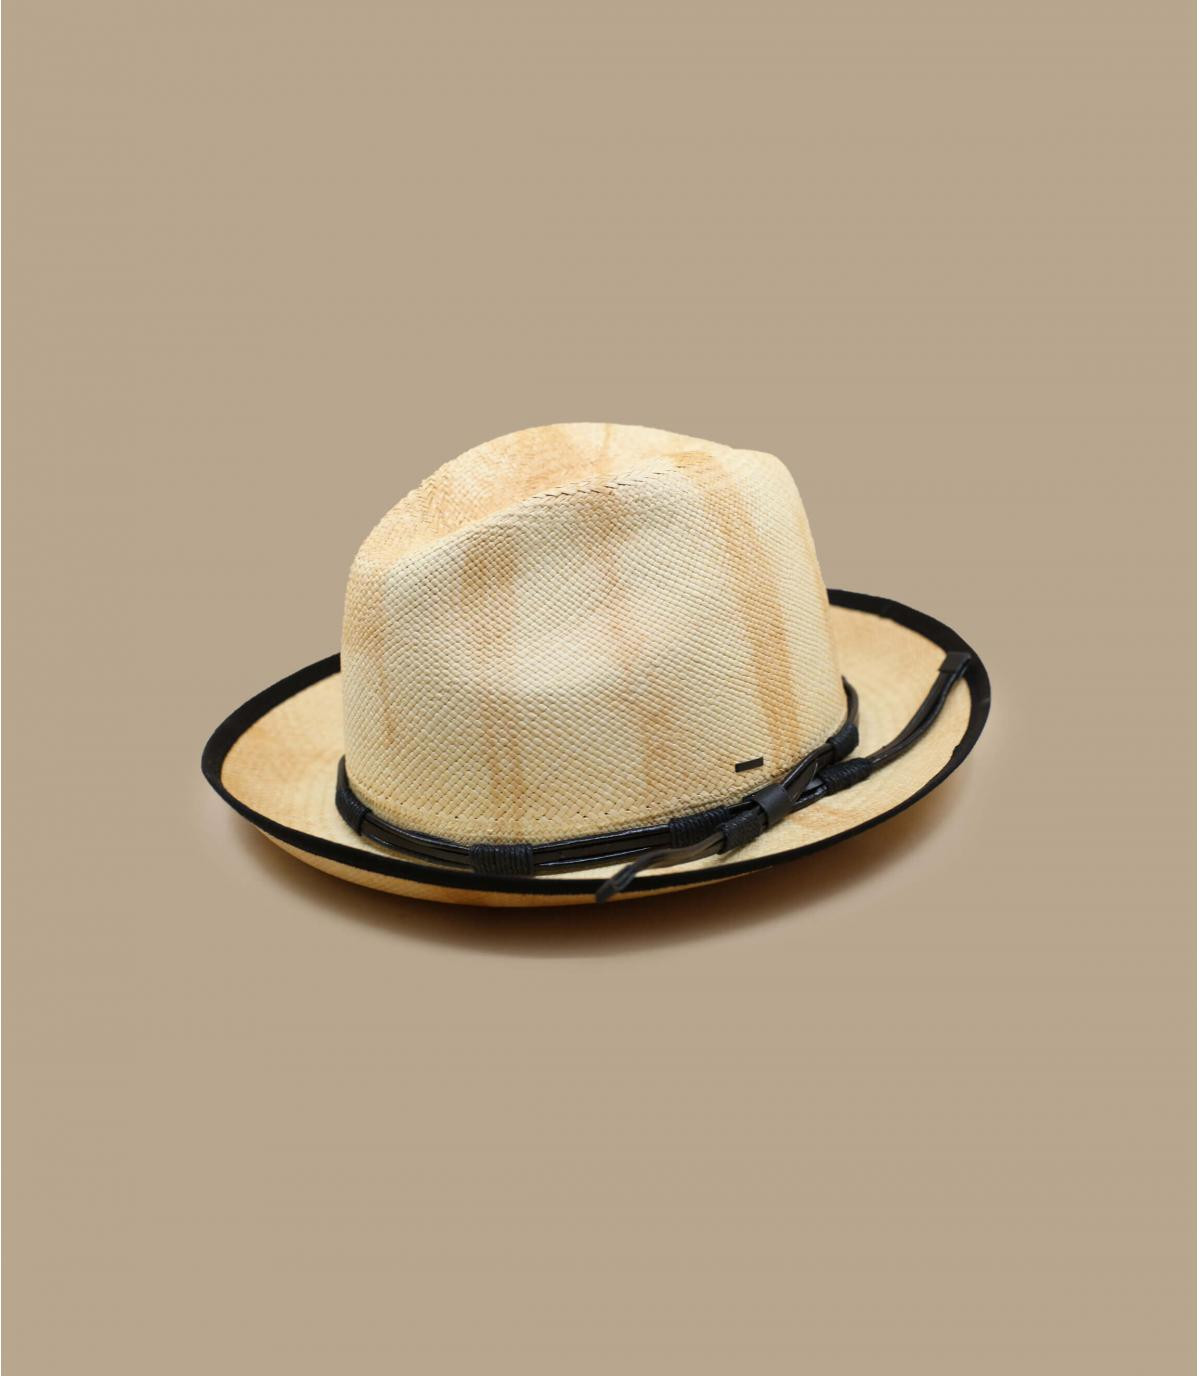 Straw hat lace Bailey